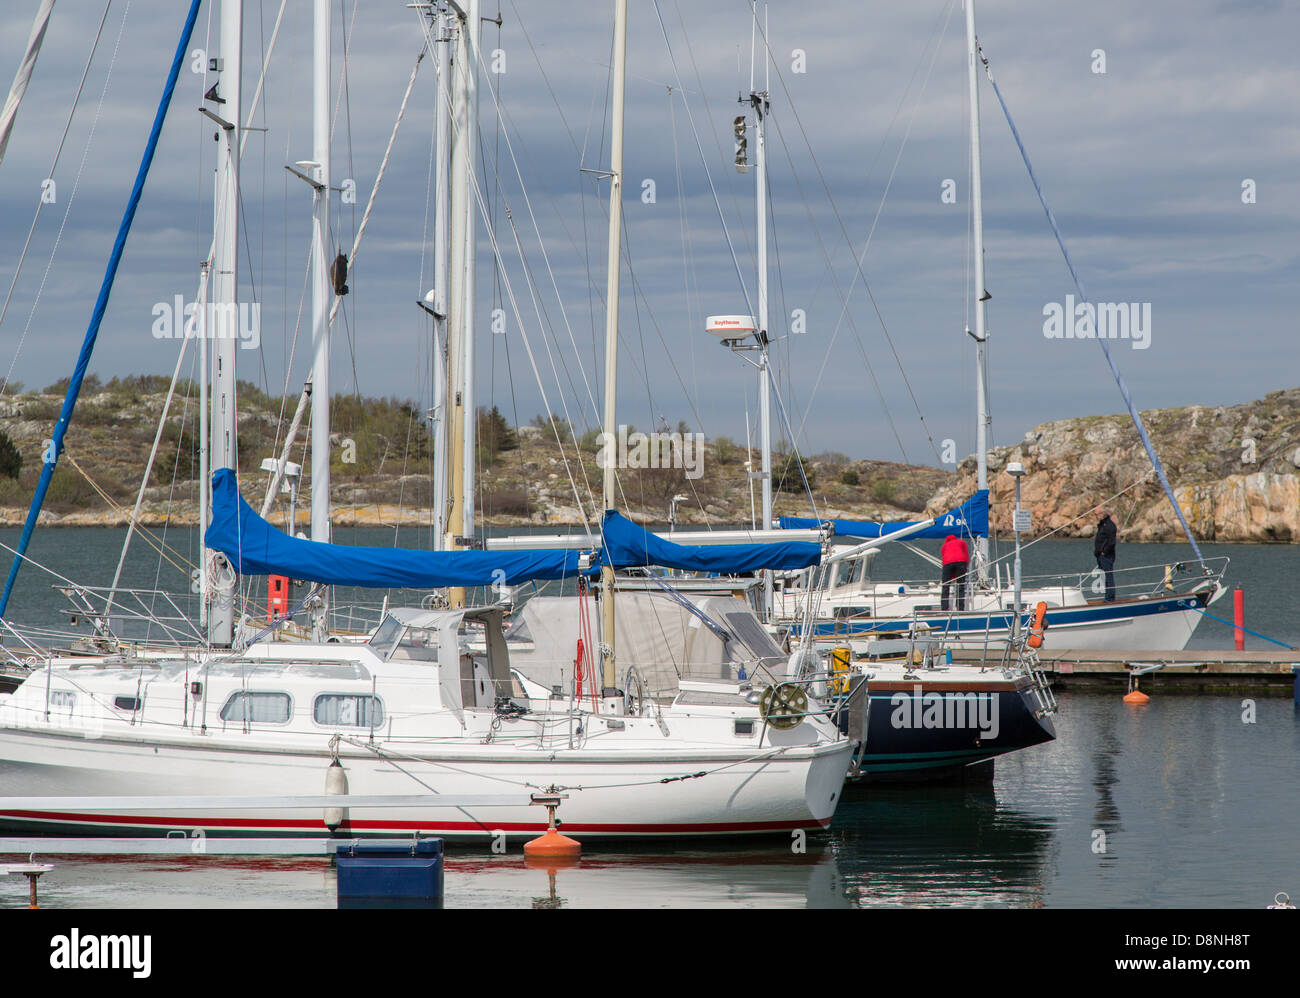 Sailboats in the Bratten harbor on Styrsö, an archipelago island near Gothenburg Sweden - Stock Image